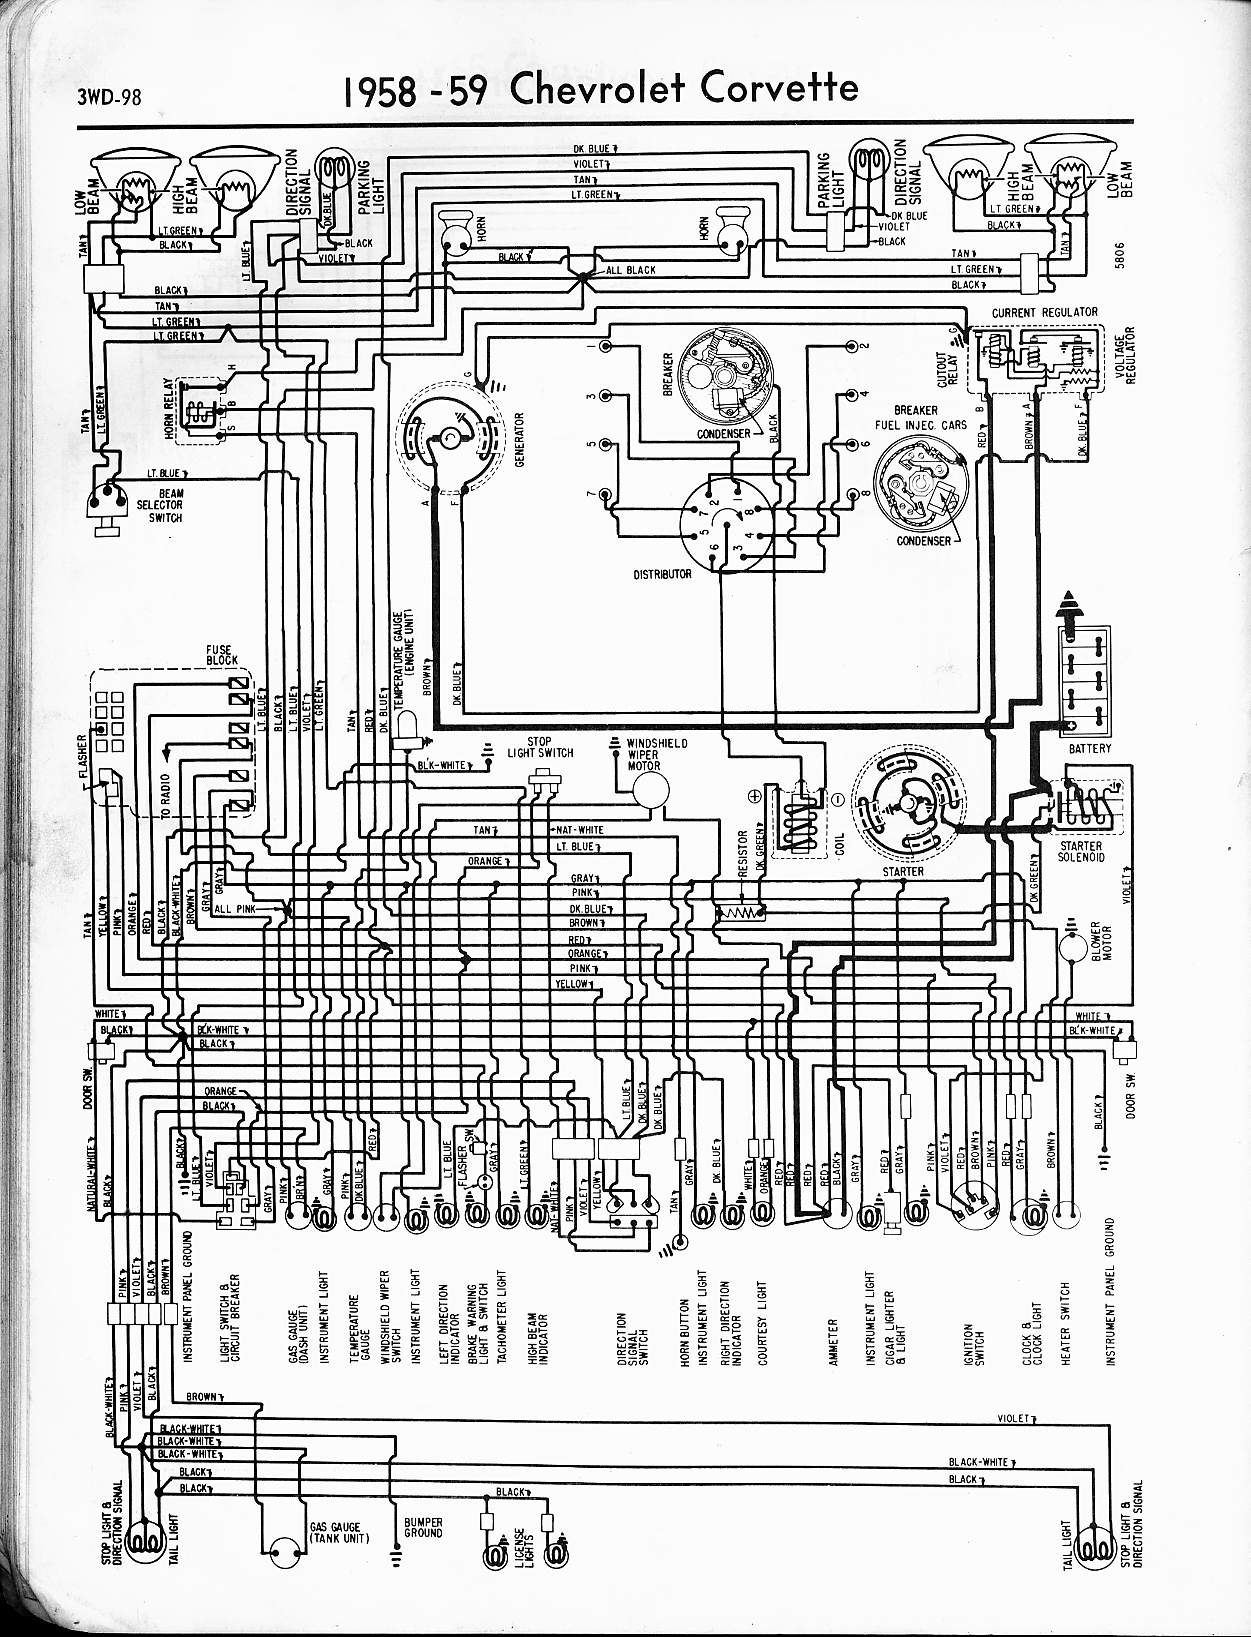 MWireChev58_3WD 098 1969 chevelle engine wiring diagram along with of wiring library